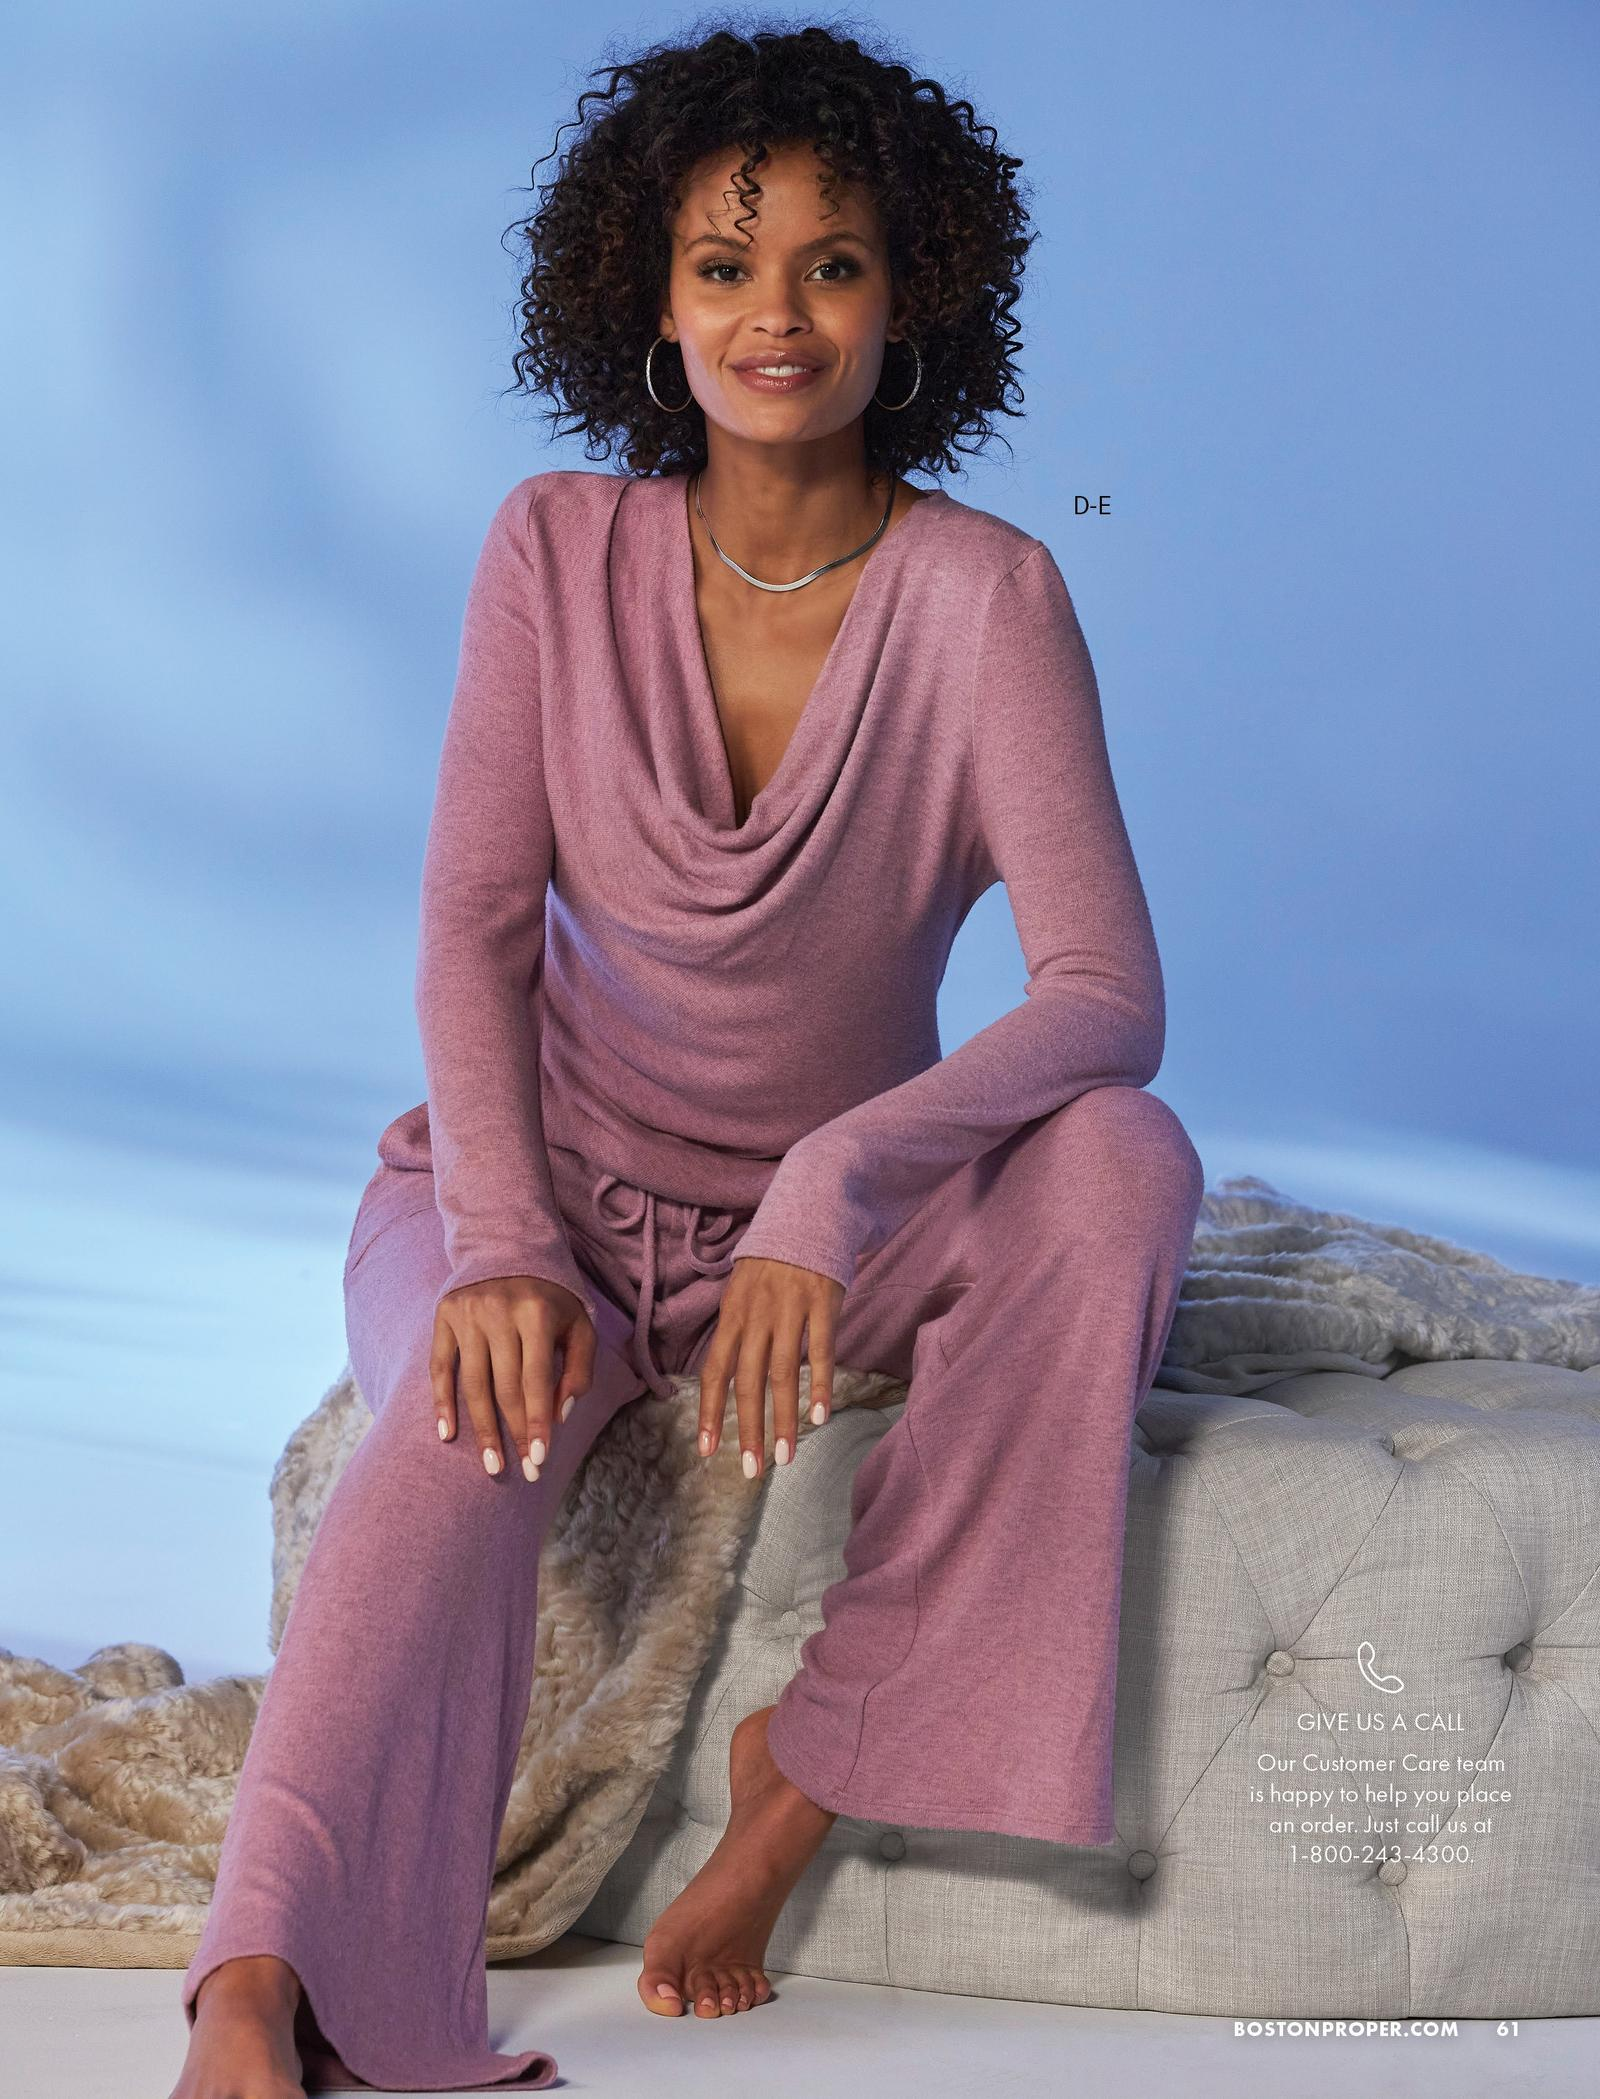 model wearing a pink cowl-neck long-sleeve top and matching wide-leg lounge pants.